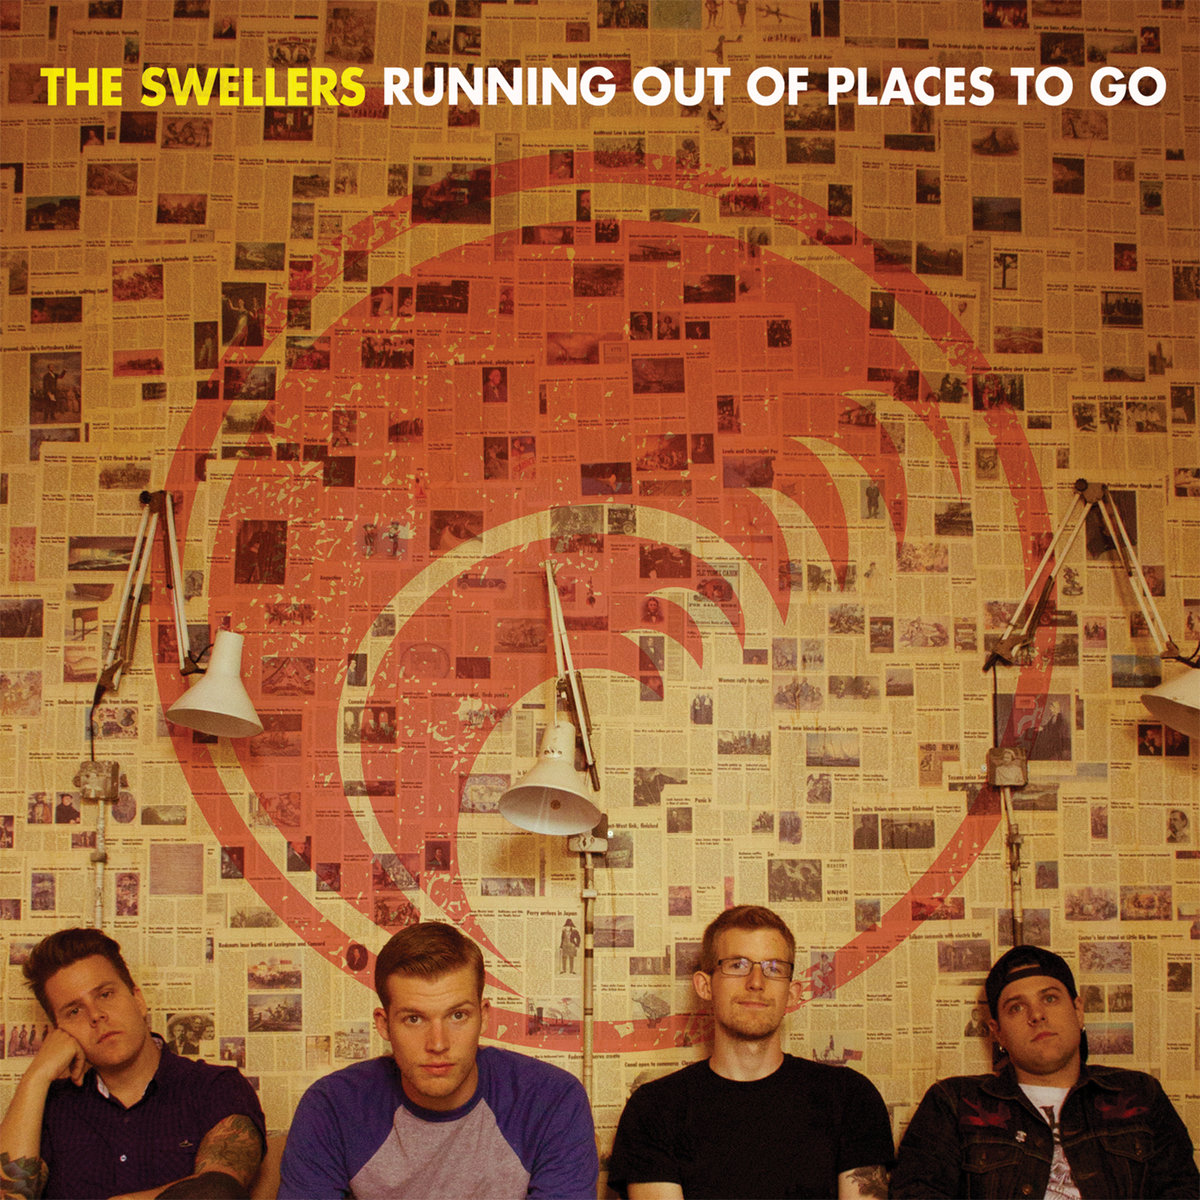 The Swellers – Running Out of Places to Go